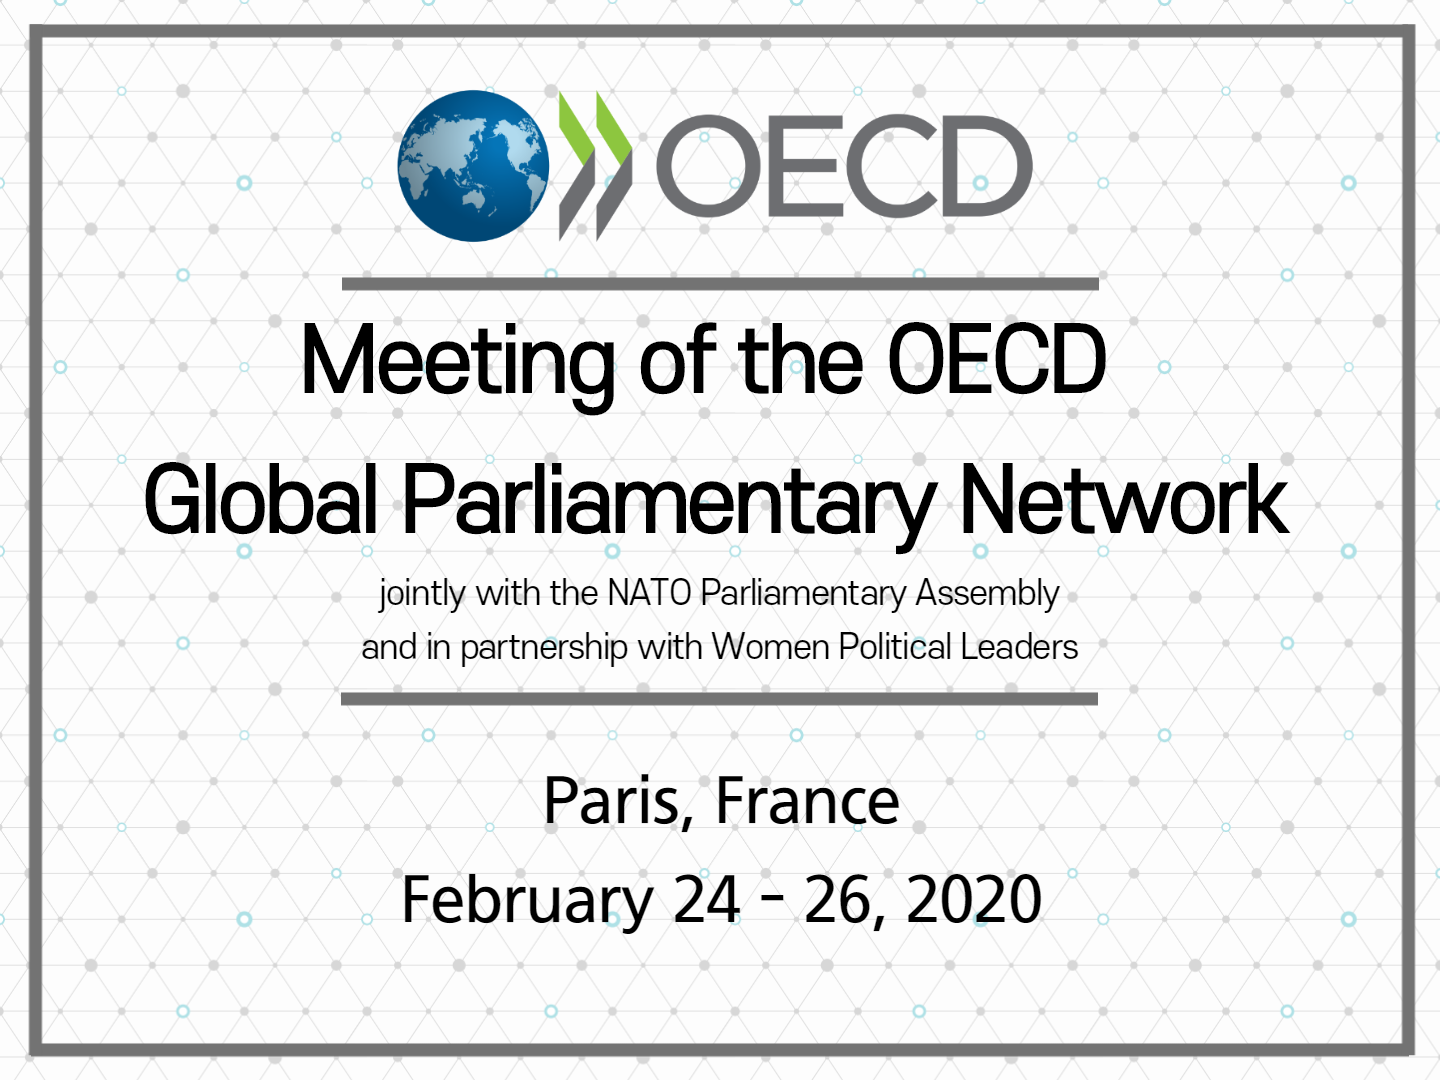 Meeting of the OECD Global Parliamentary Network